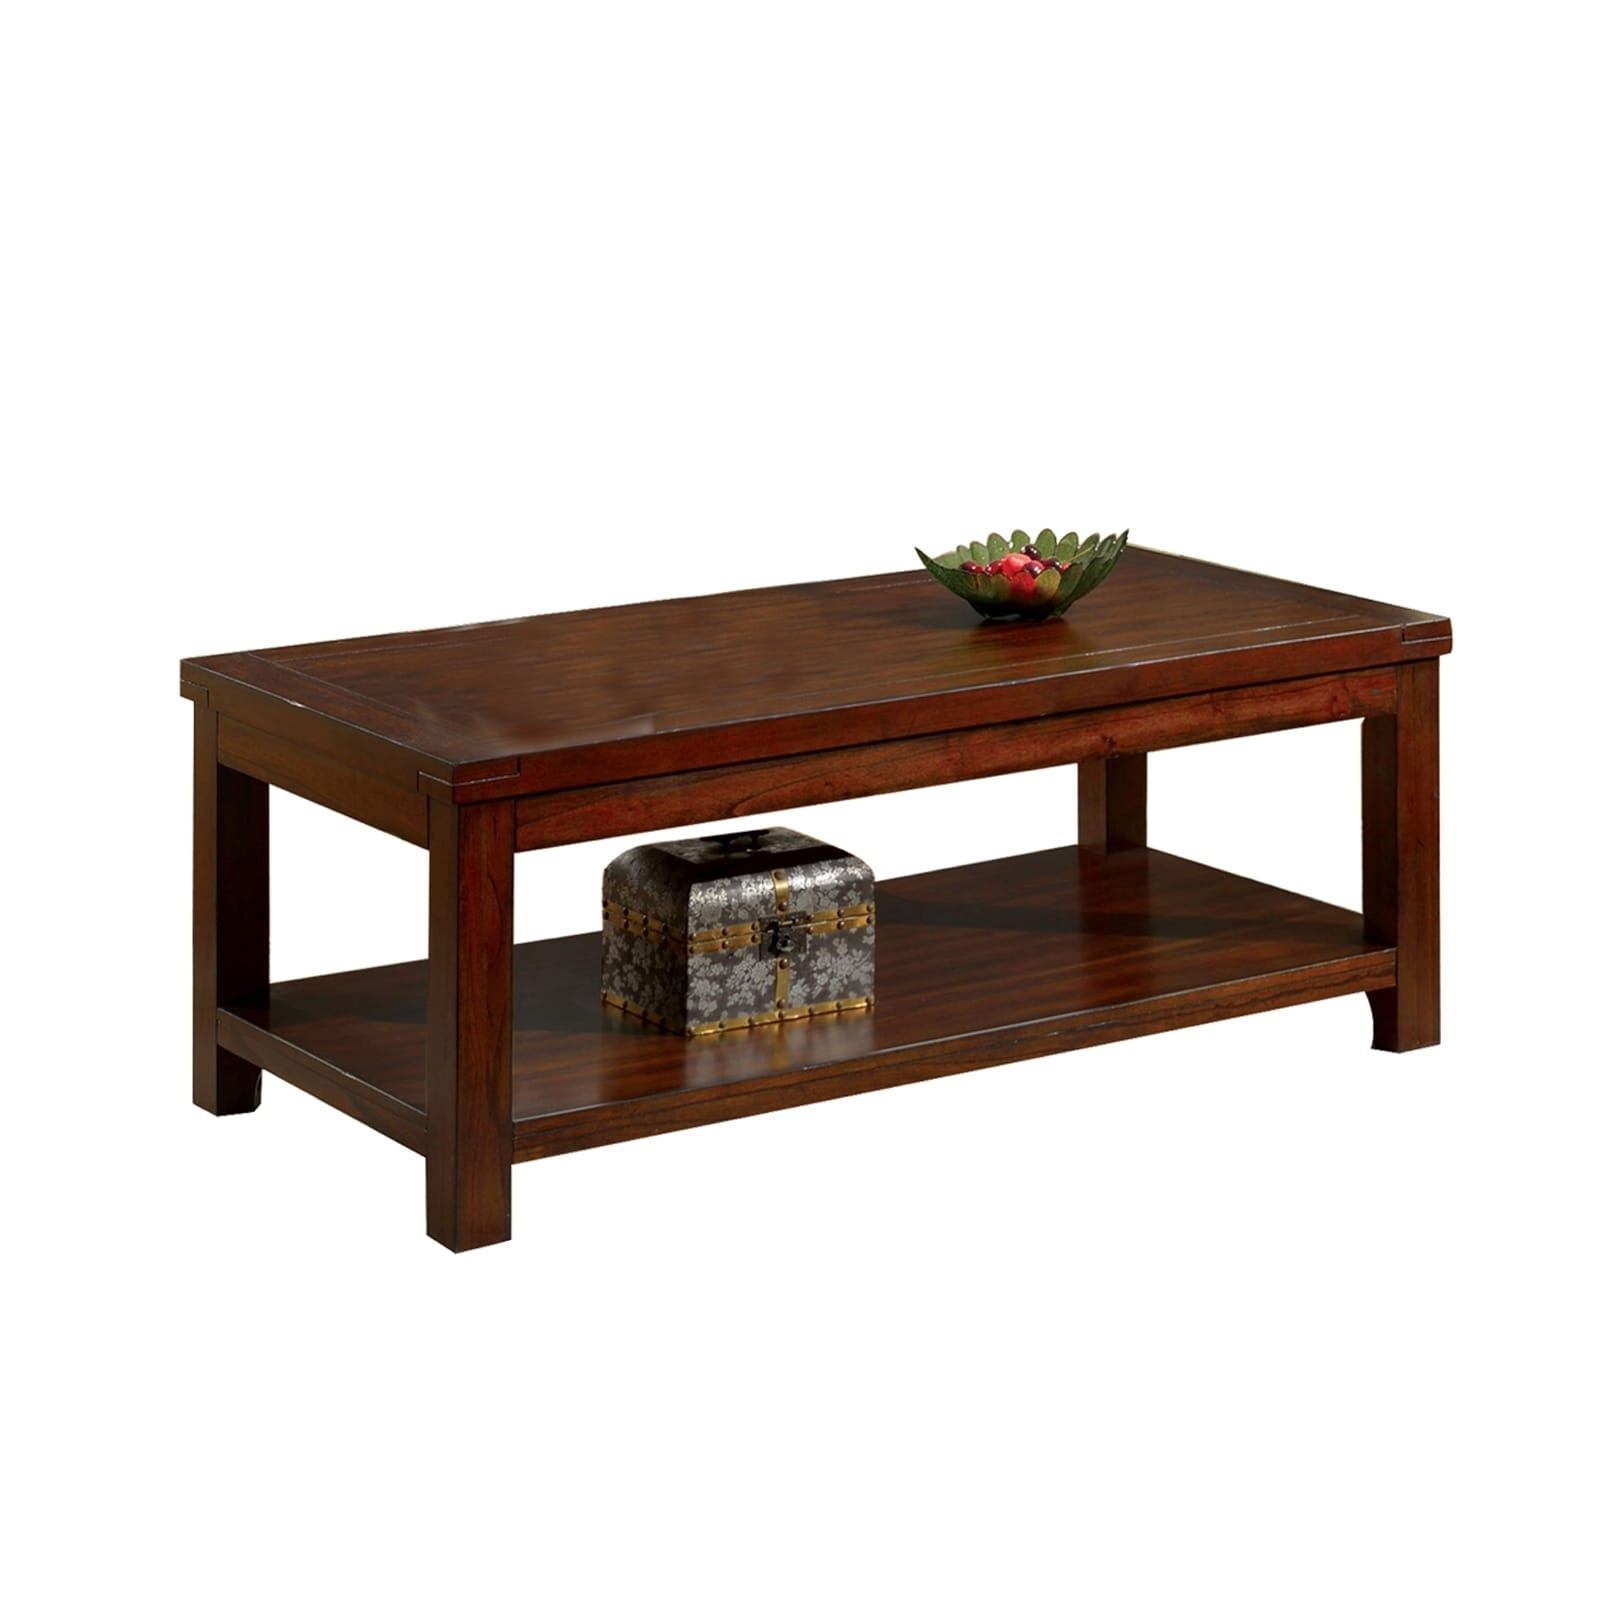 Picture of: Traditional Coffee Table With Rectangular Top And Tapered Legs Brown On Sale Overstock 30243161